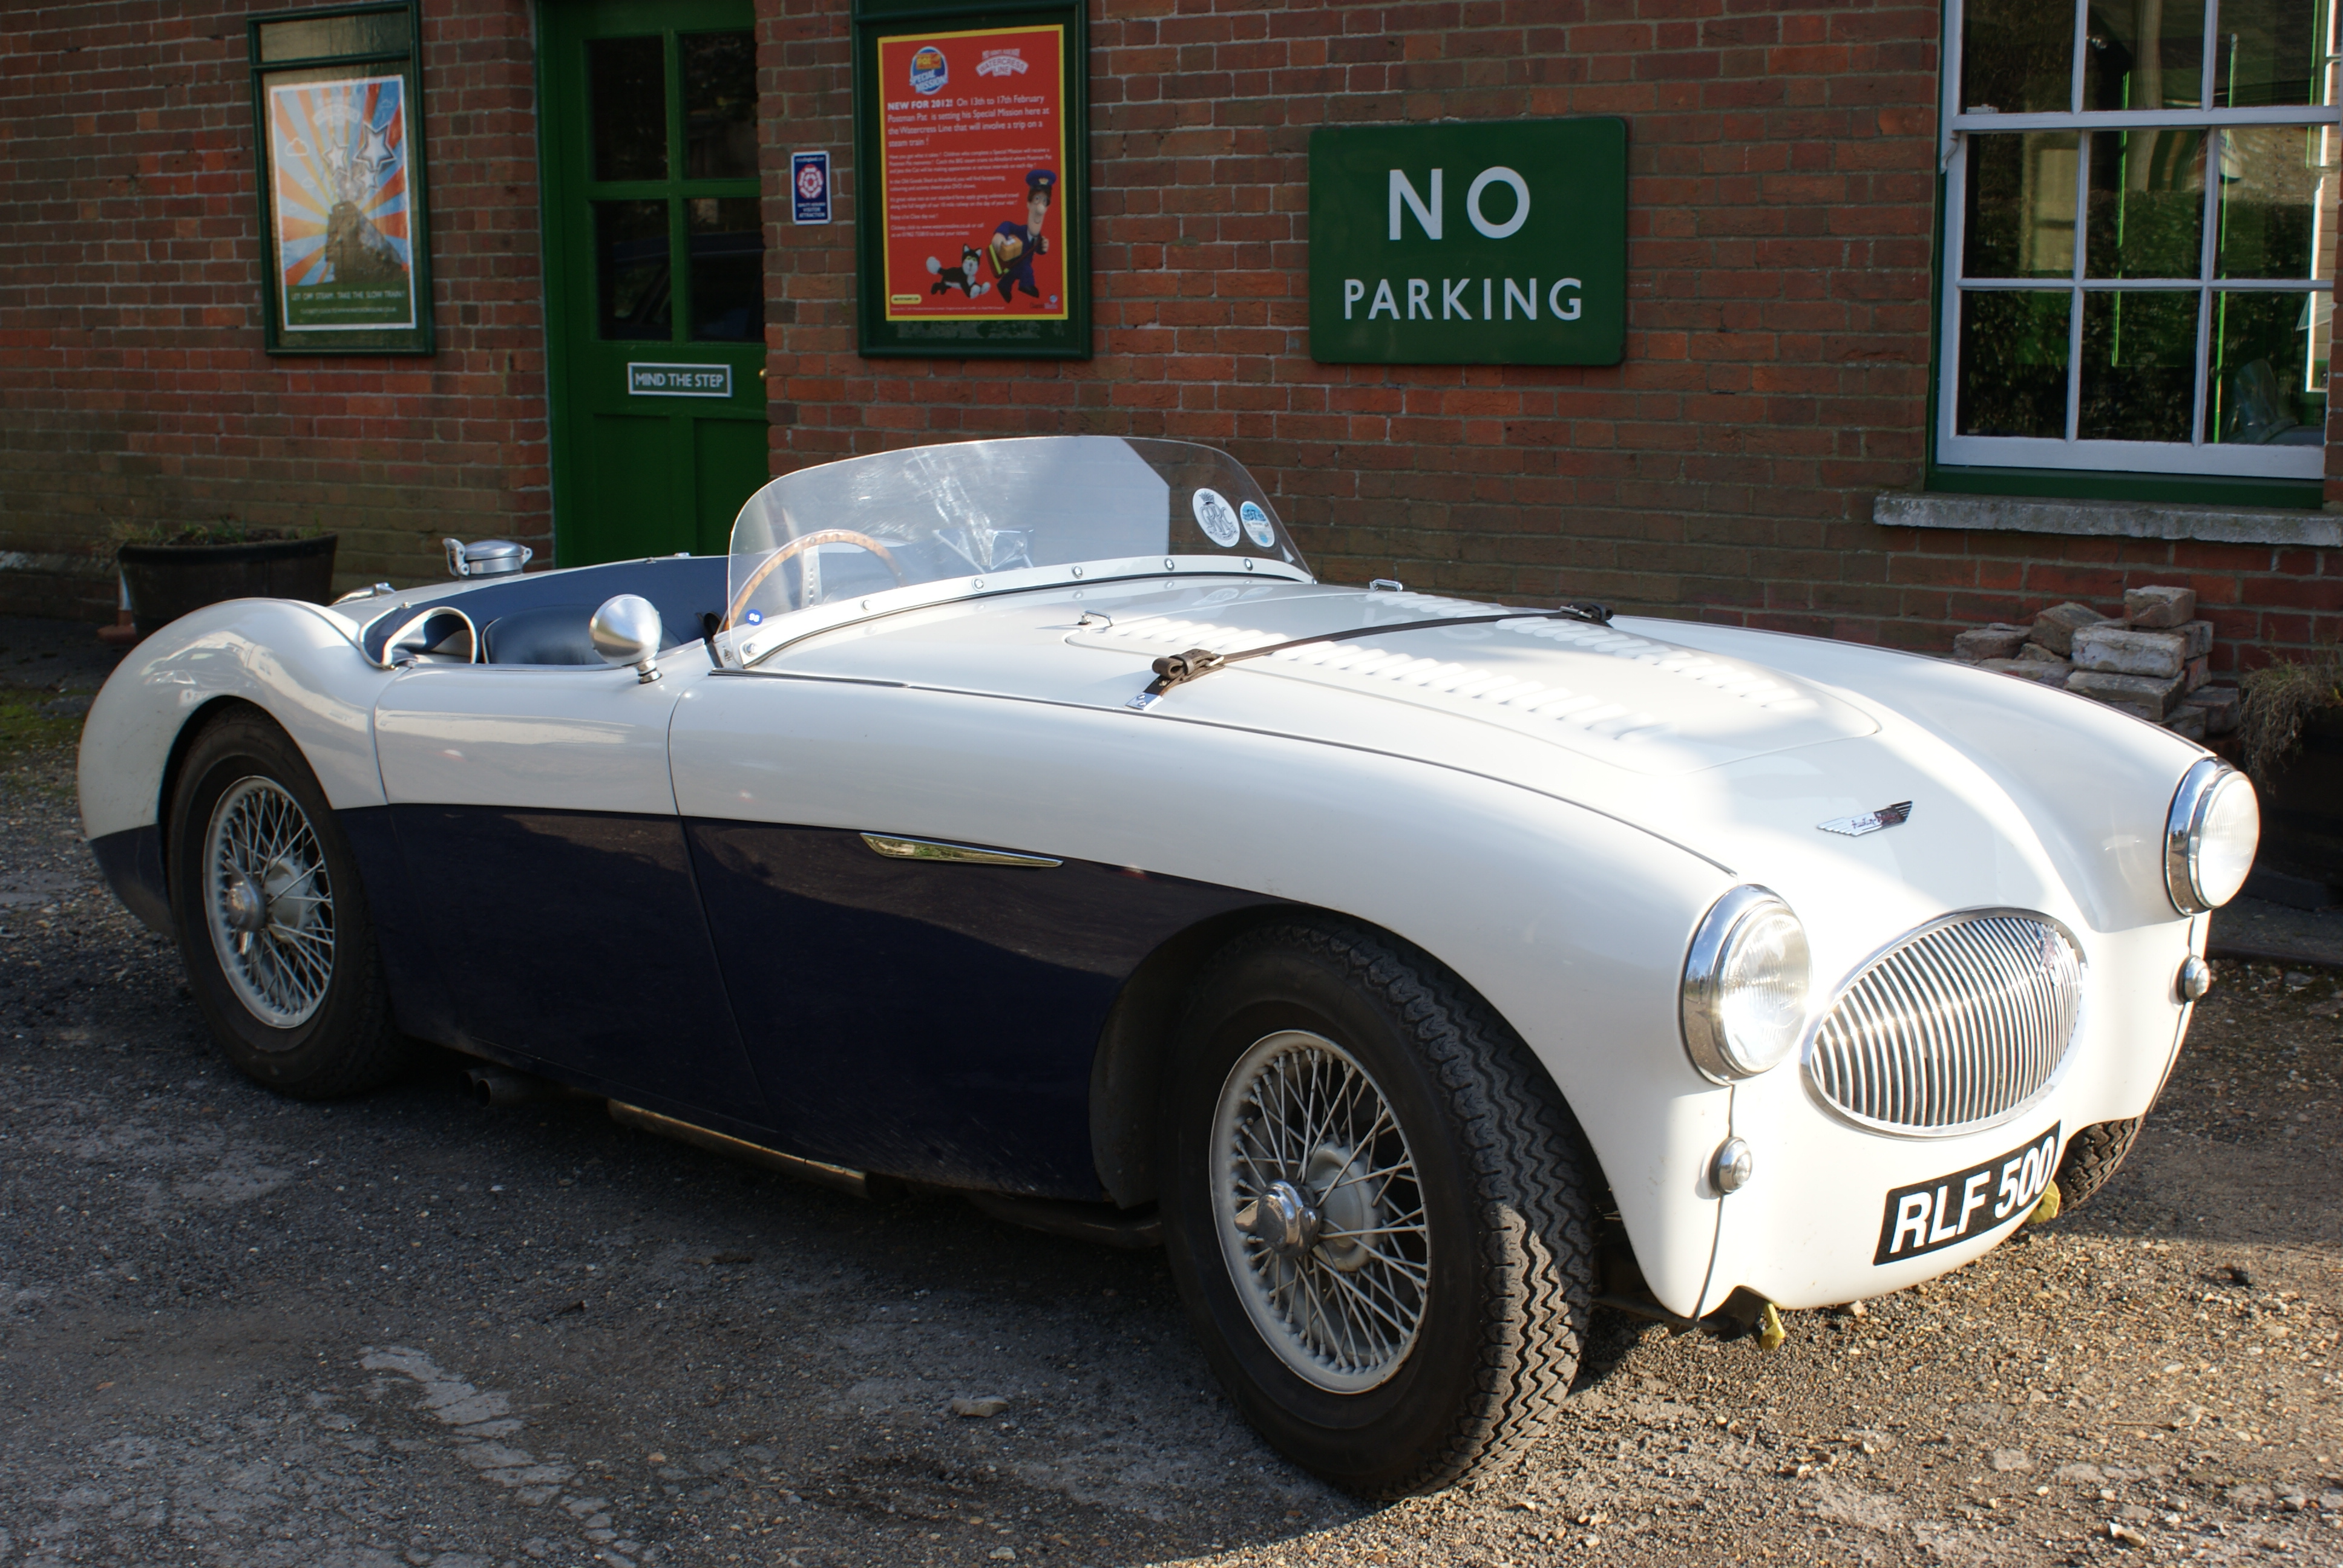 Austin Healey 100S parked at Medstead & Four Marks Watercress Line Railway Station